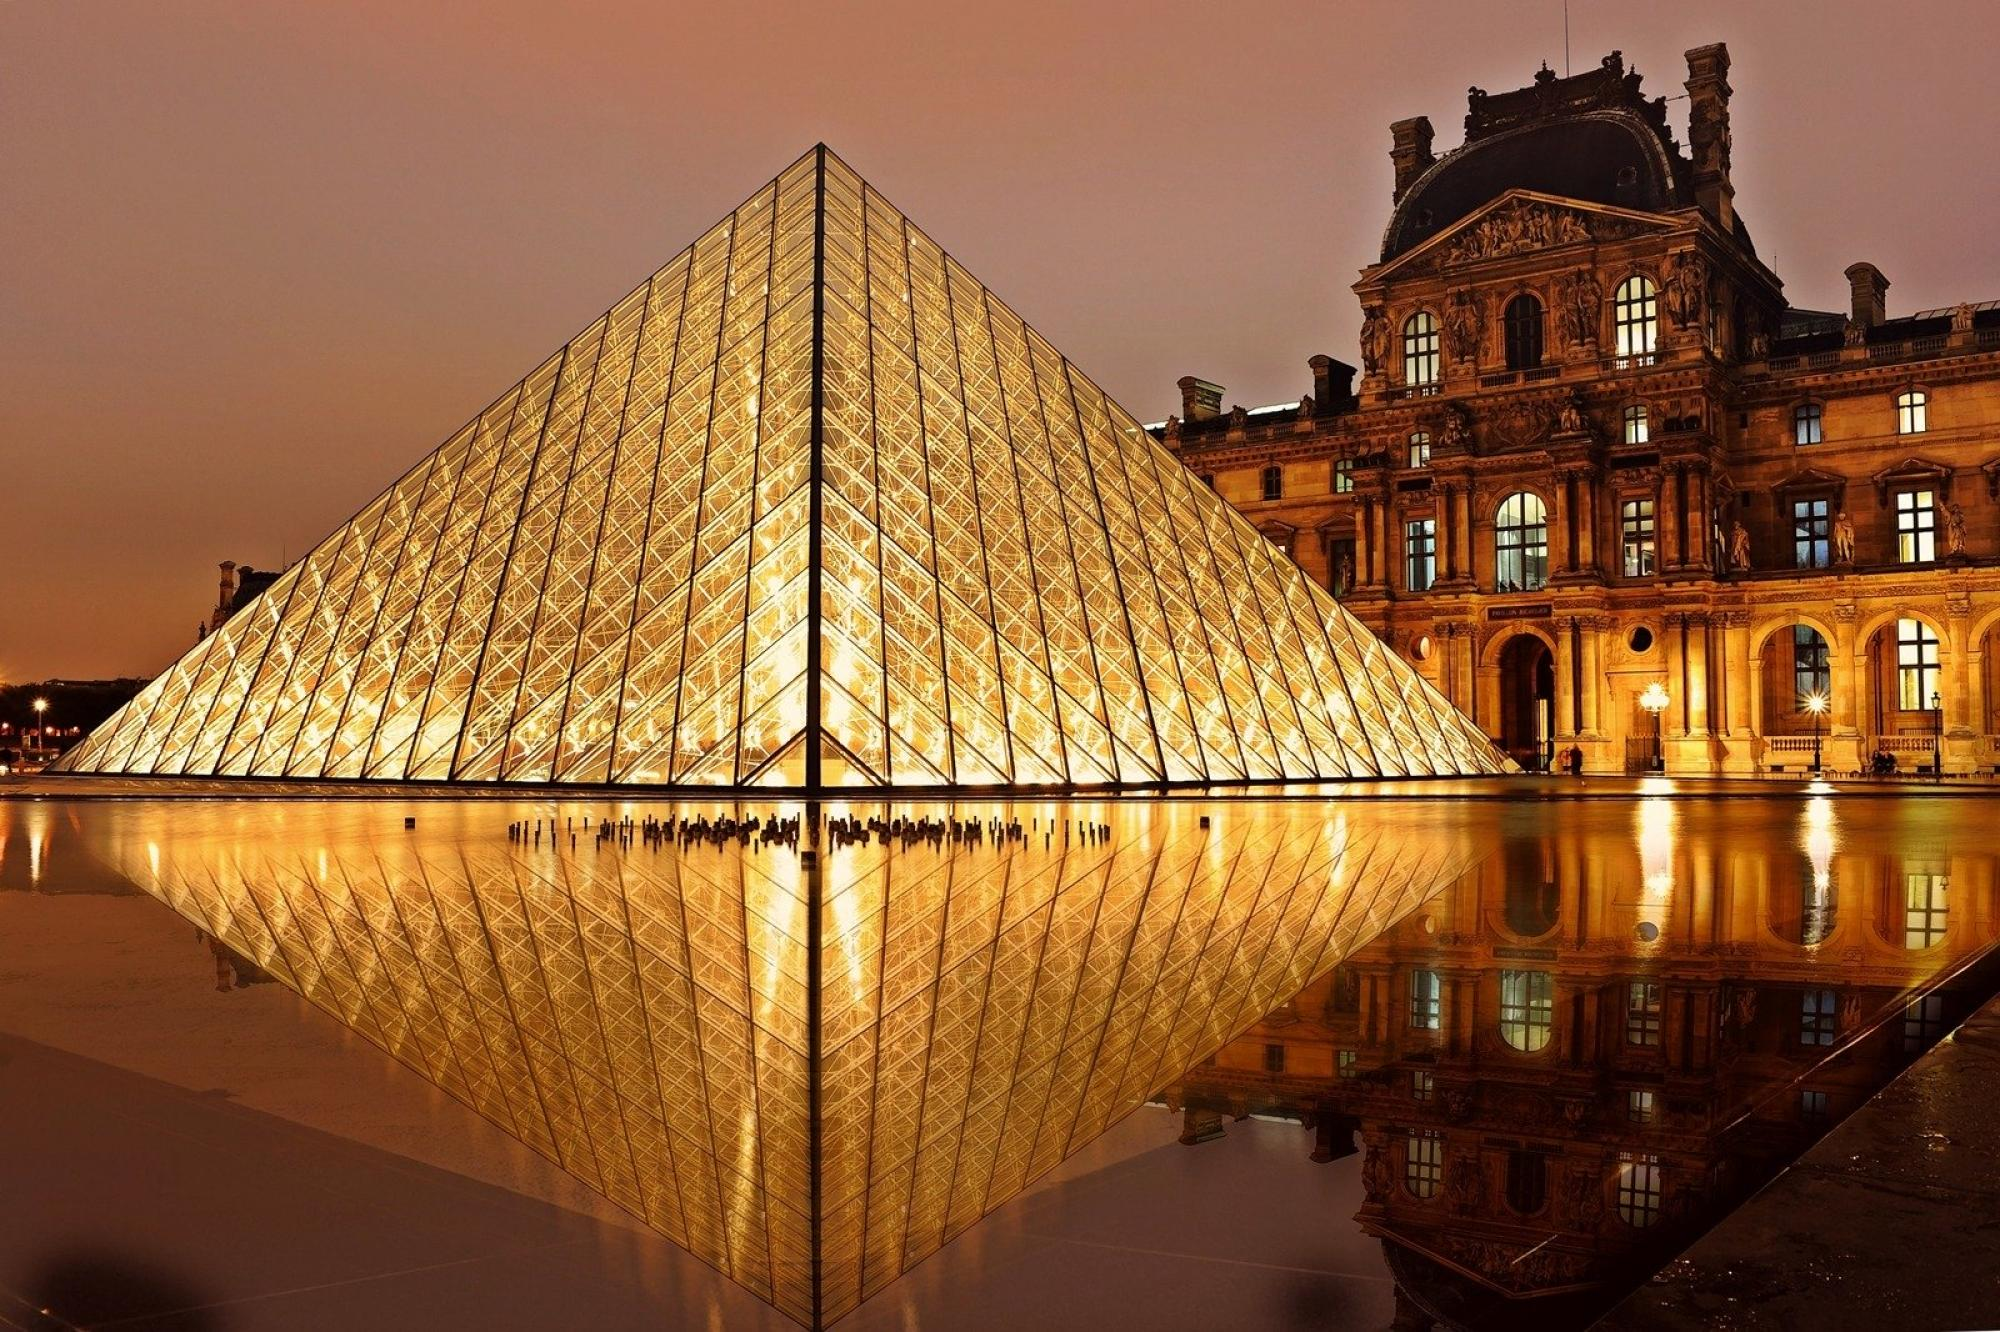 Backpacking France, visit paris, visit bordeaux, lyon, train travel (Cities of France, Railway Tour)